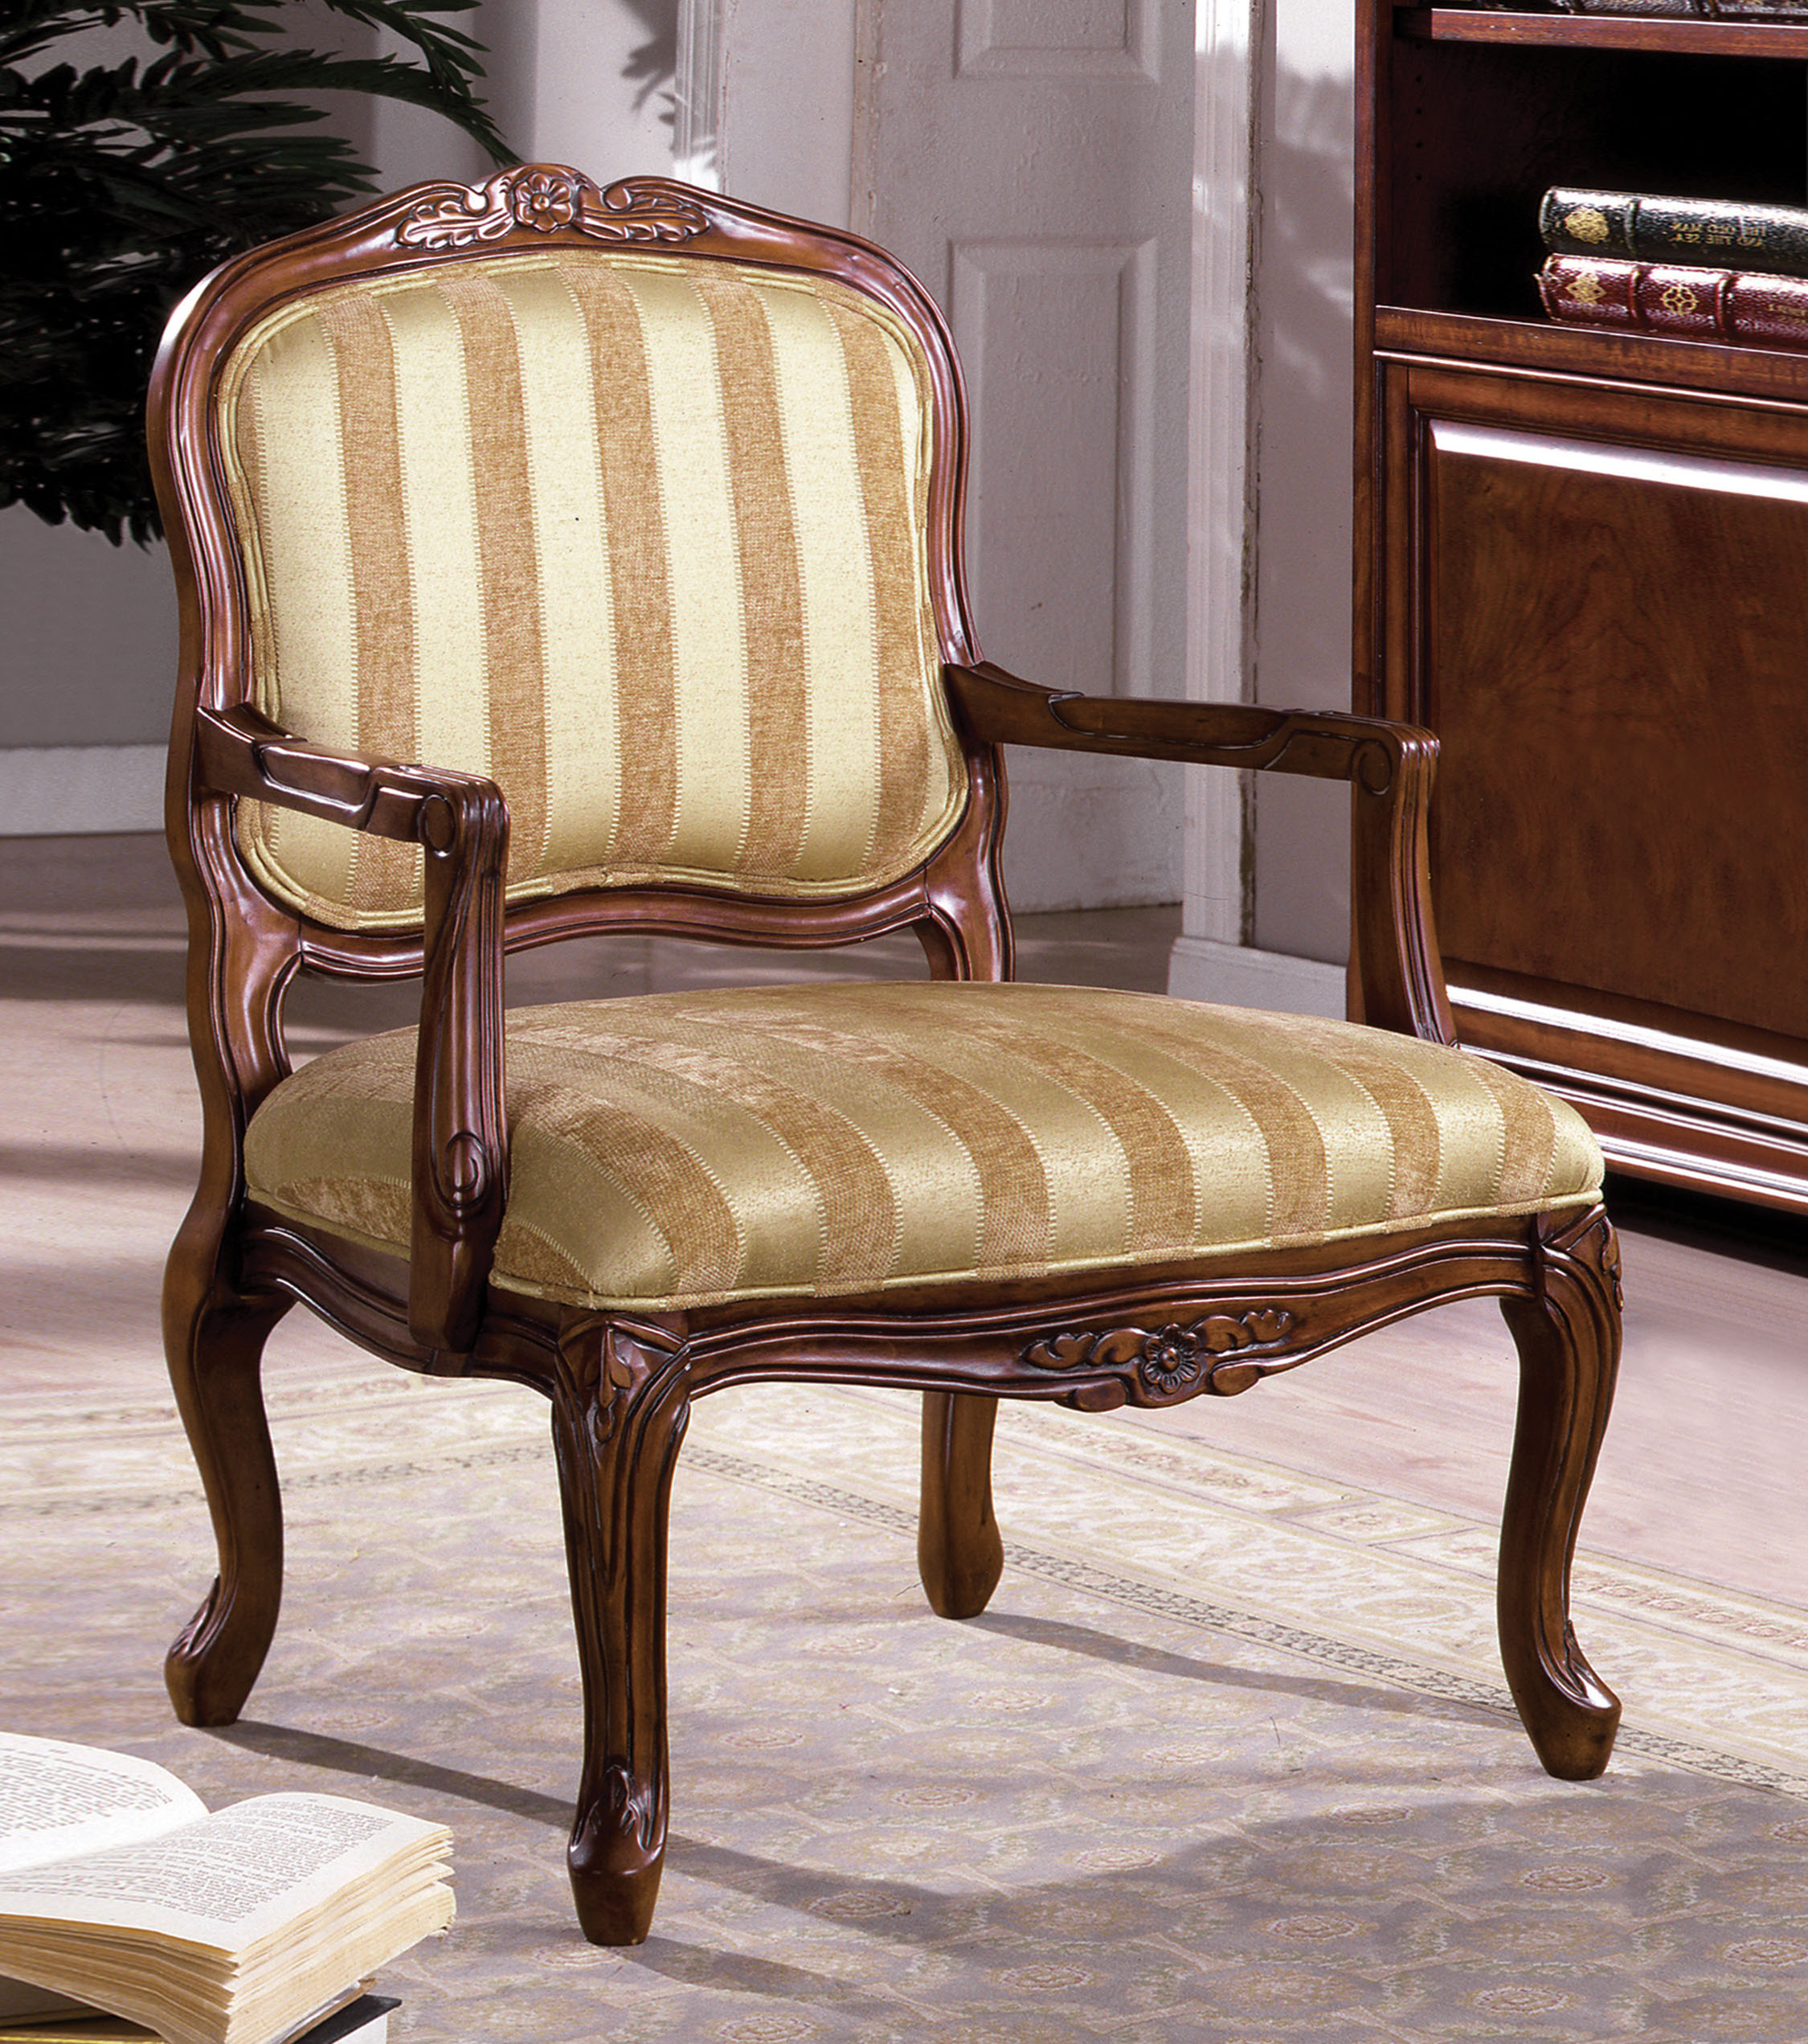 Antique Accent Chairs Furniture Of America Furniture Of America Antique Oak Teville Accent Chair